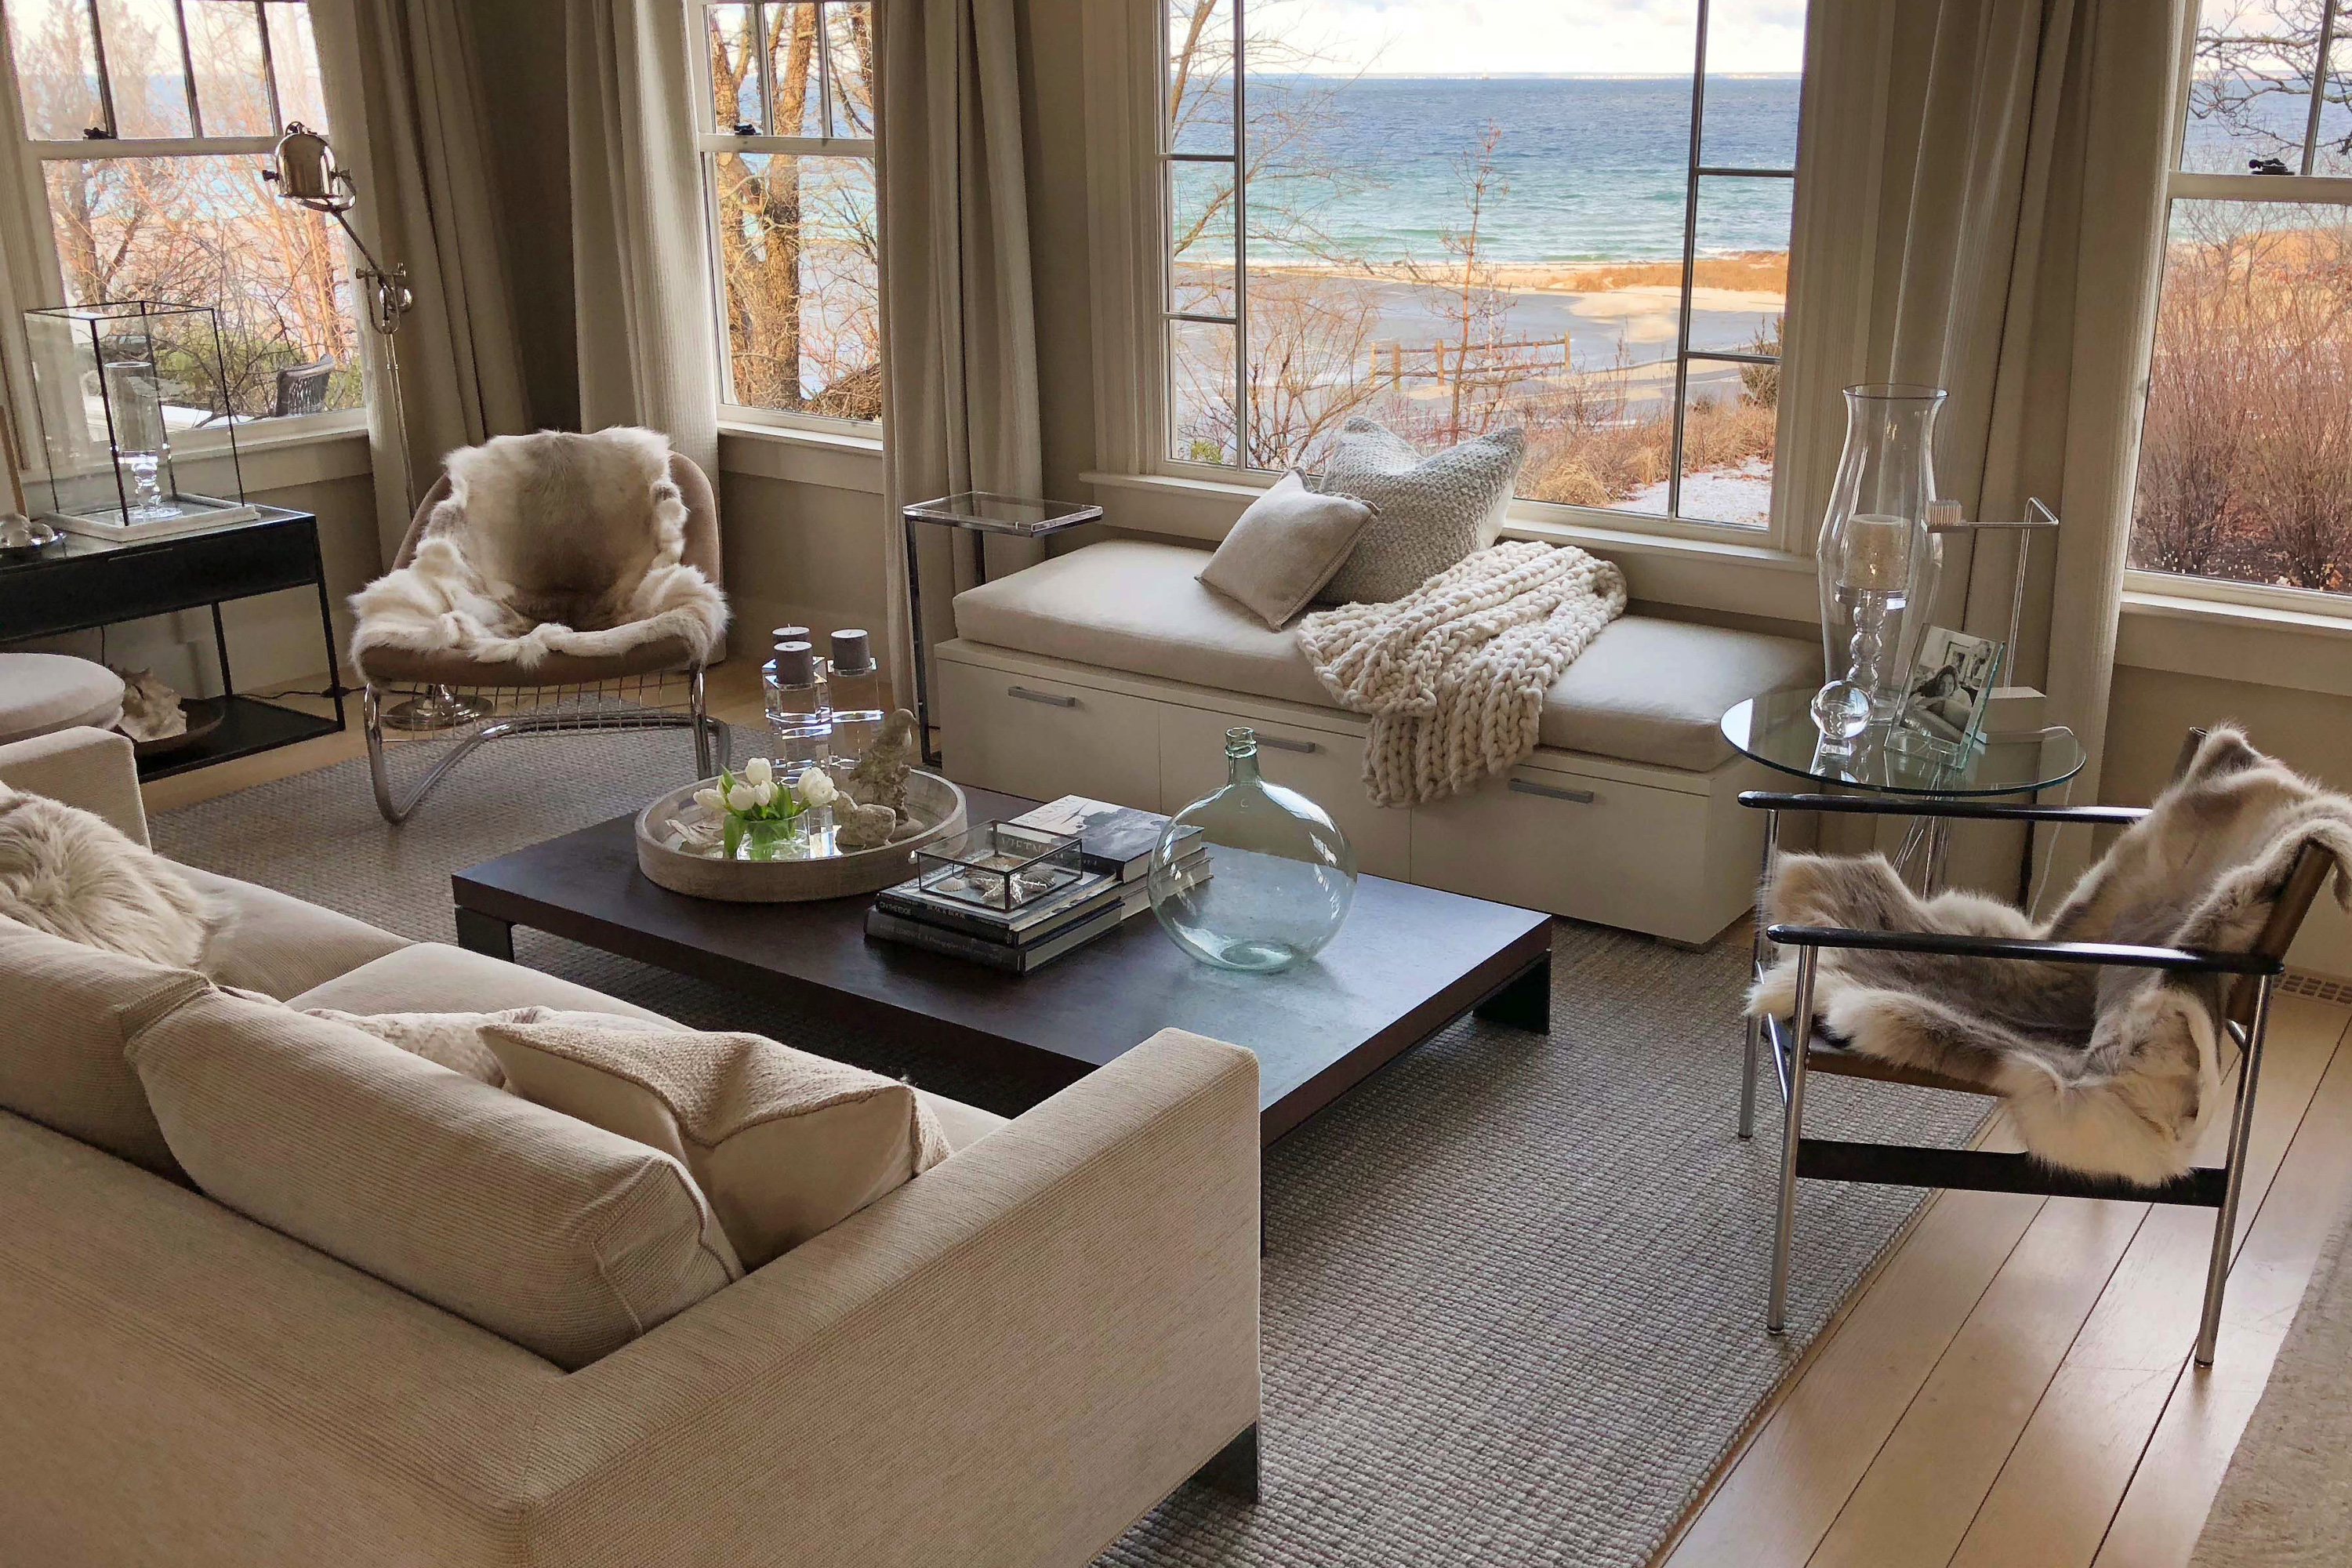 Furnishing with wool in beach house style with handwoven wool carpet and matching home textiles-1